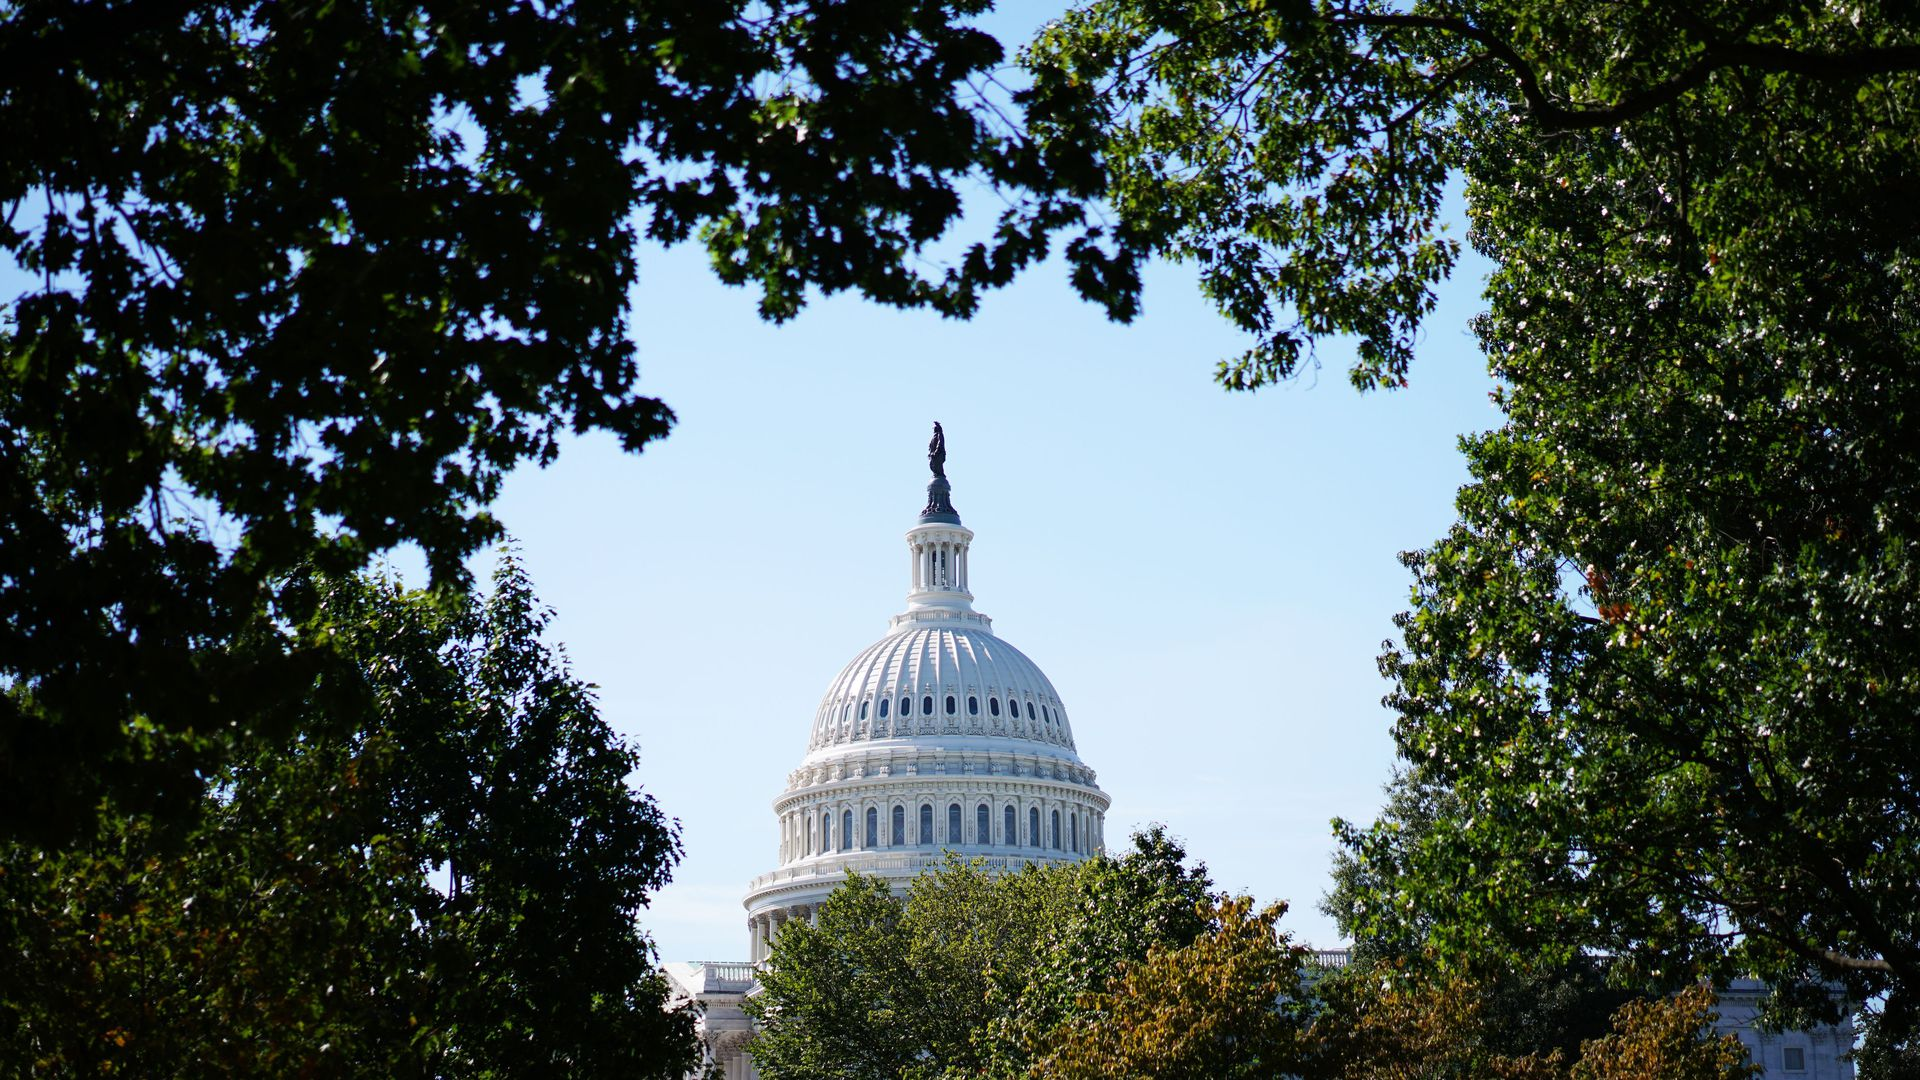 A long view of the U.S. Capitol Building surrounded by trees.